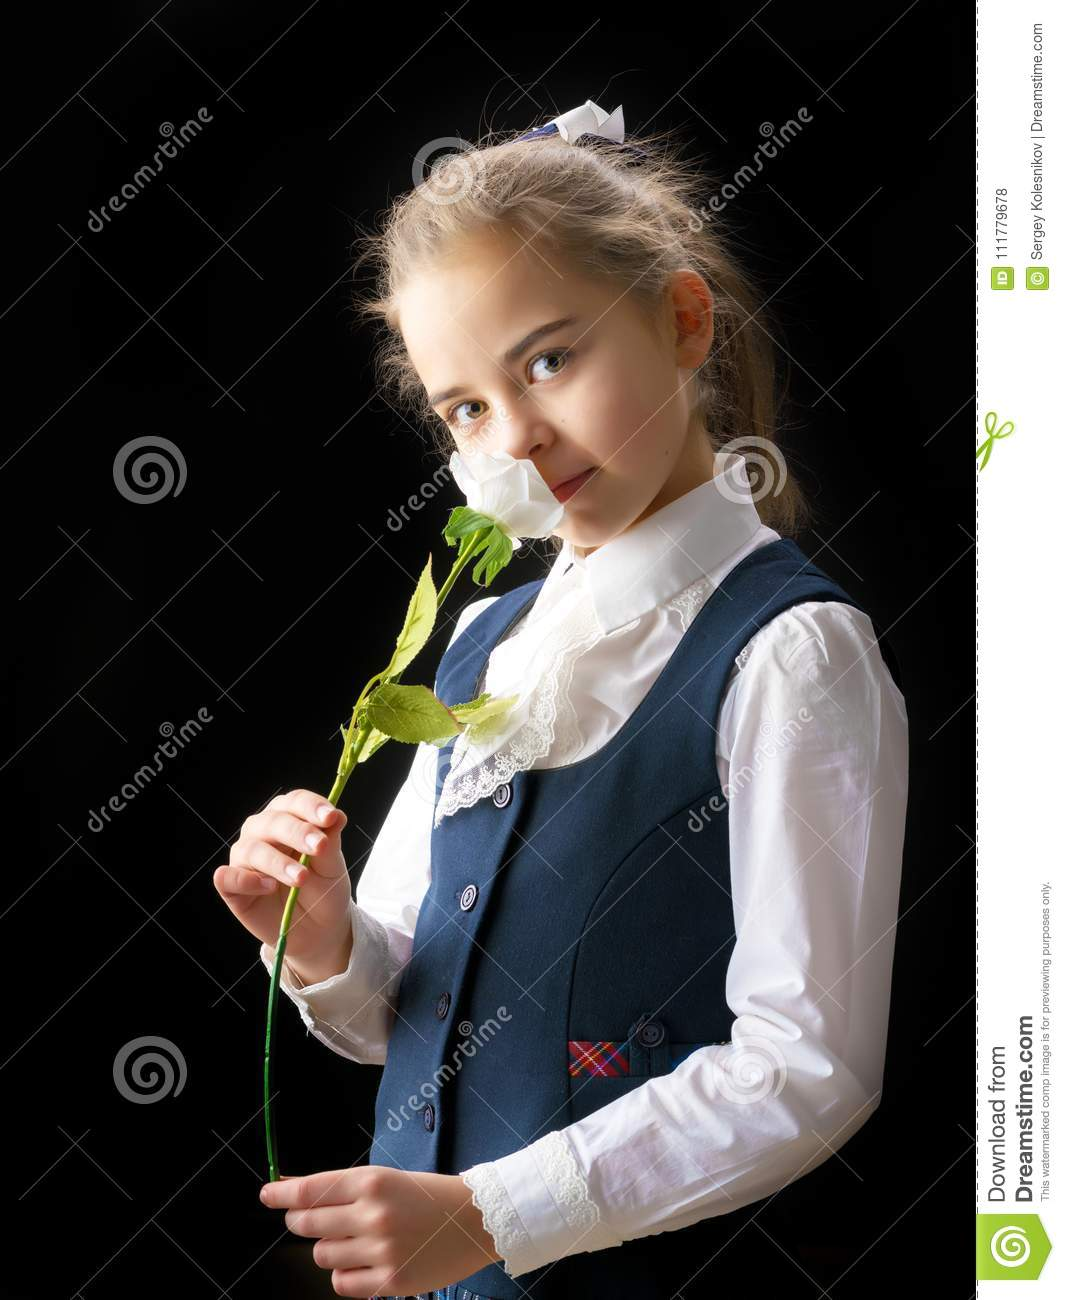 Little girl with a flower in her hand.